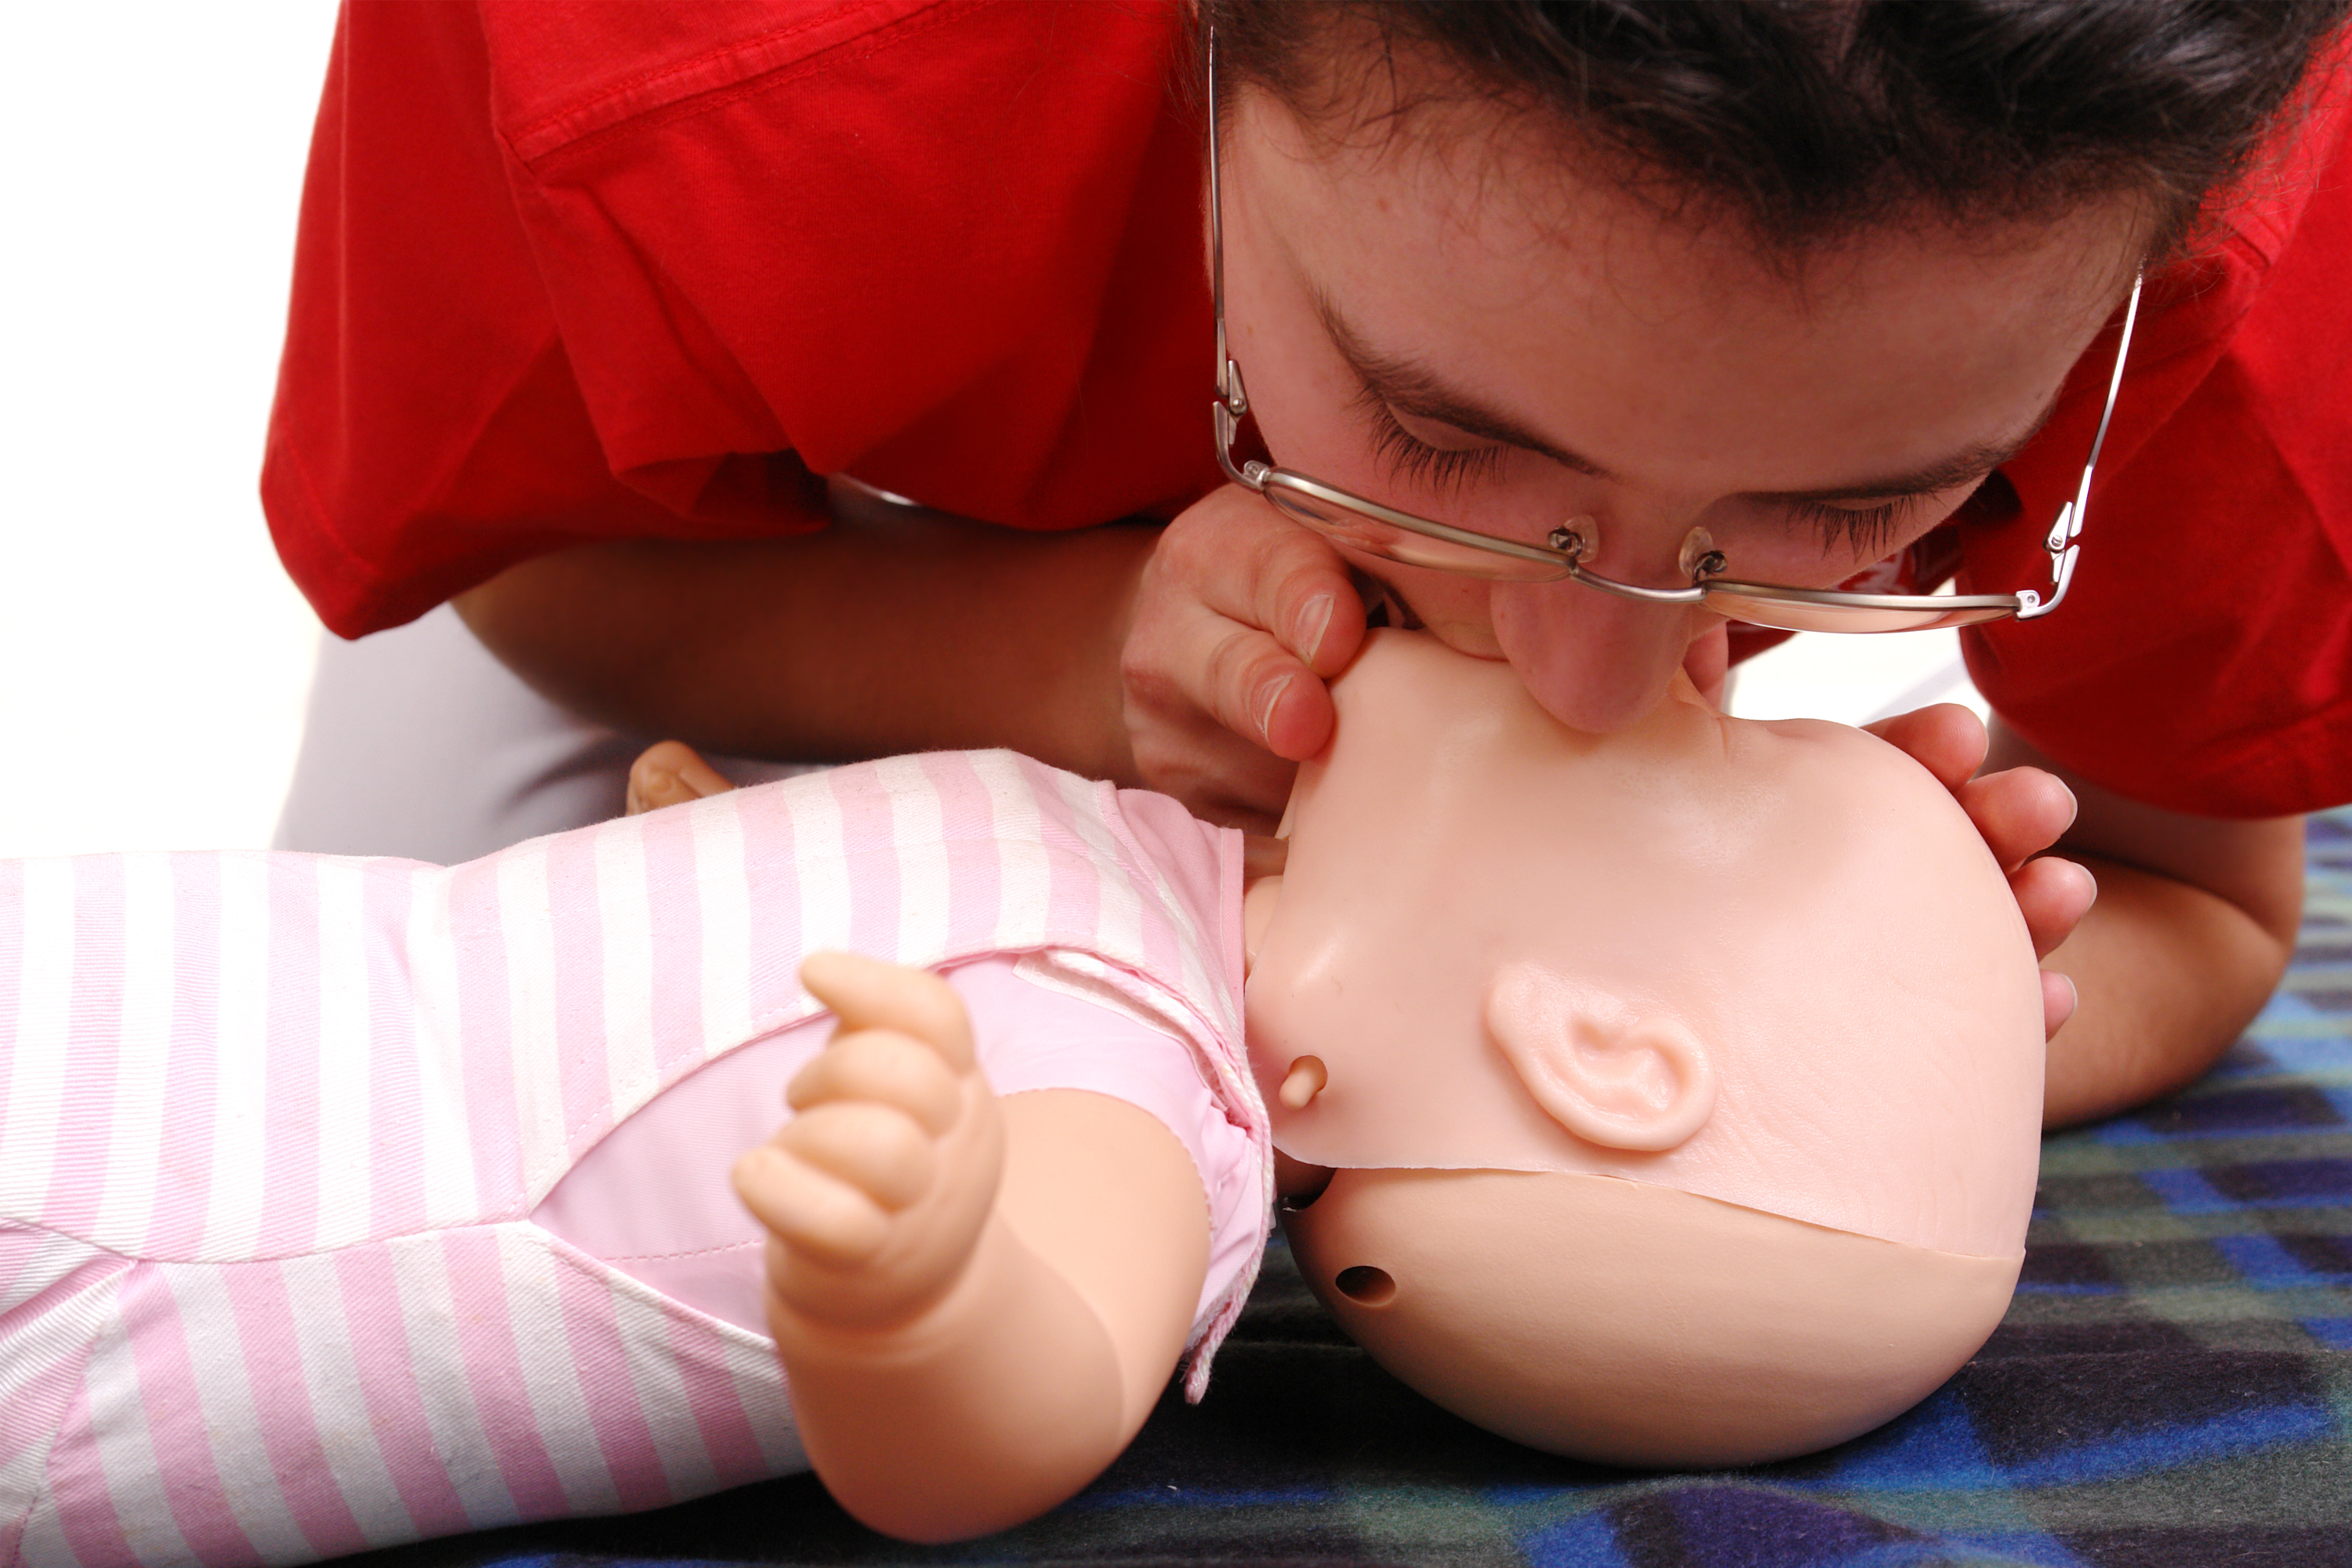 Infant dummy first aid demonstration series - first aid instructor demonstrating artificial respirat